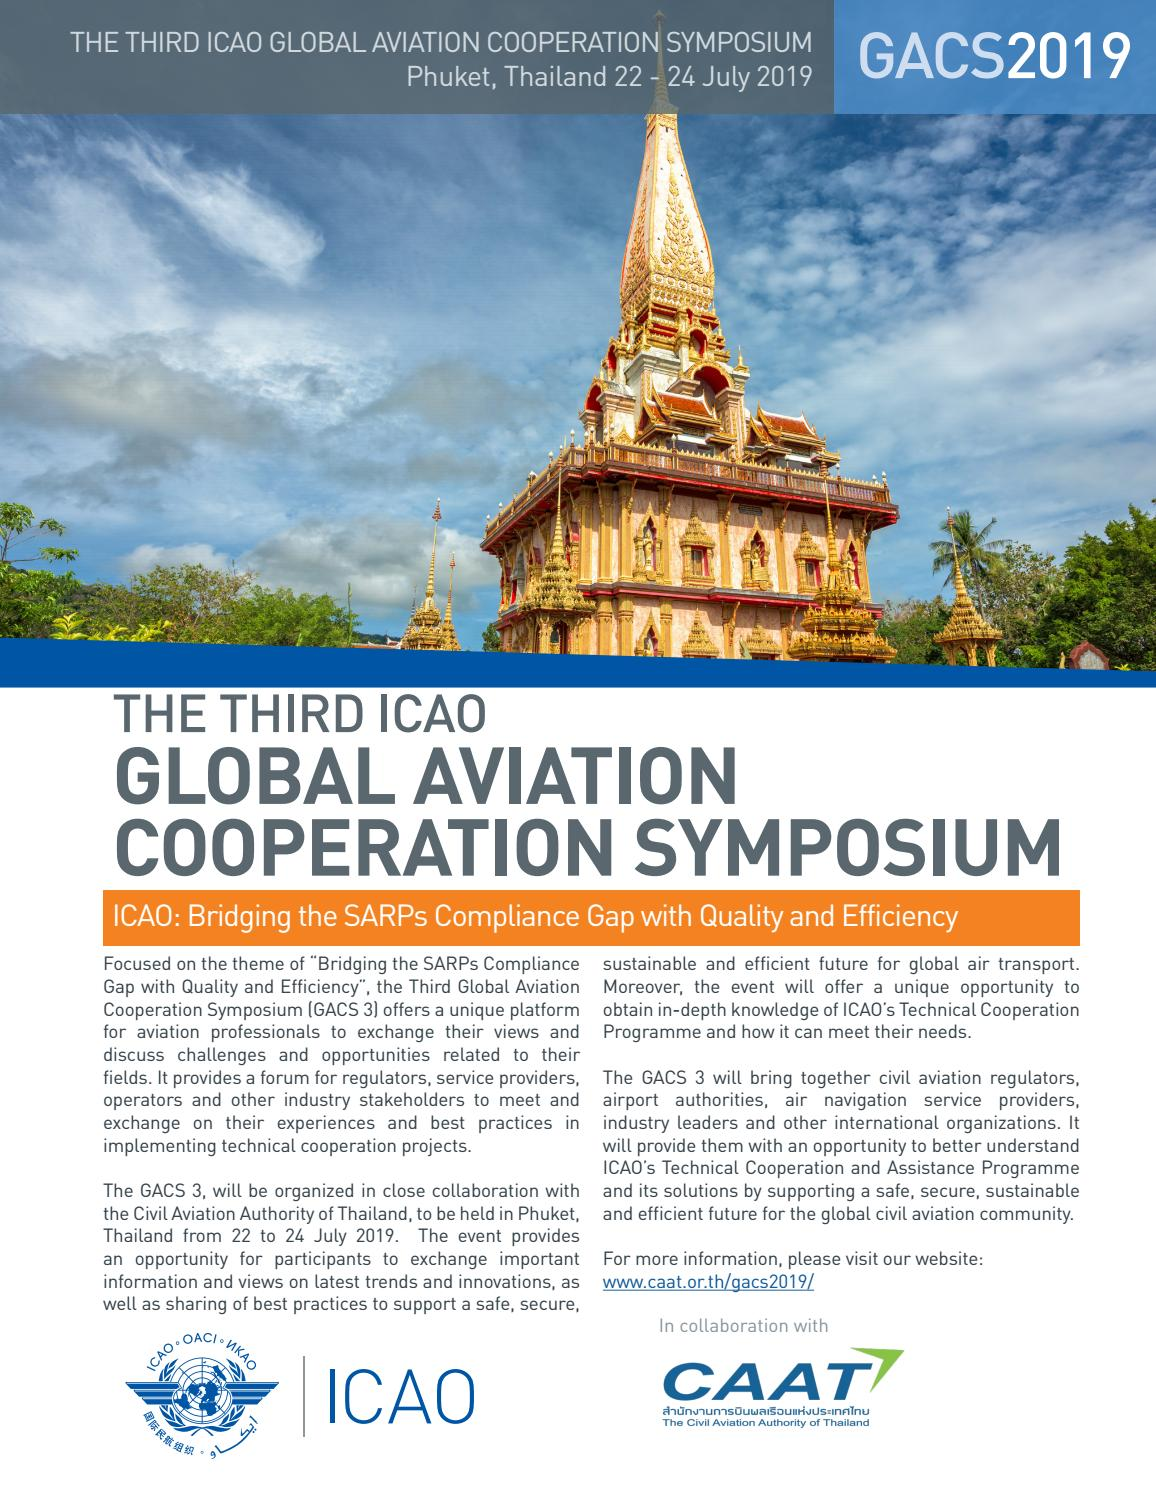 The Third ICAO Global Aviation Cooperation Symposium